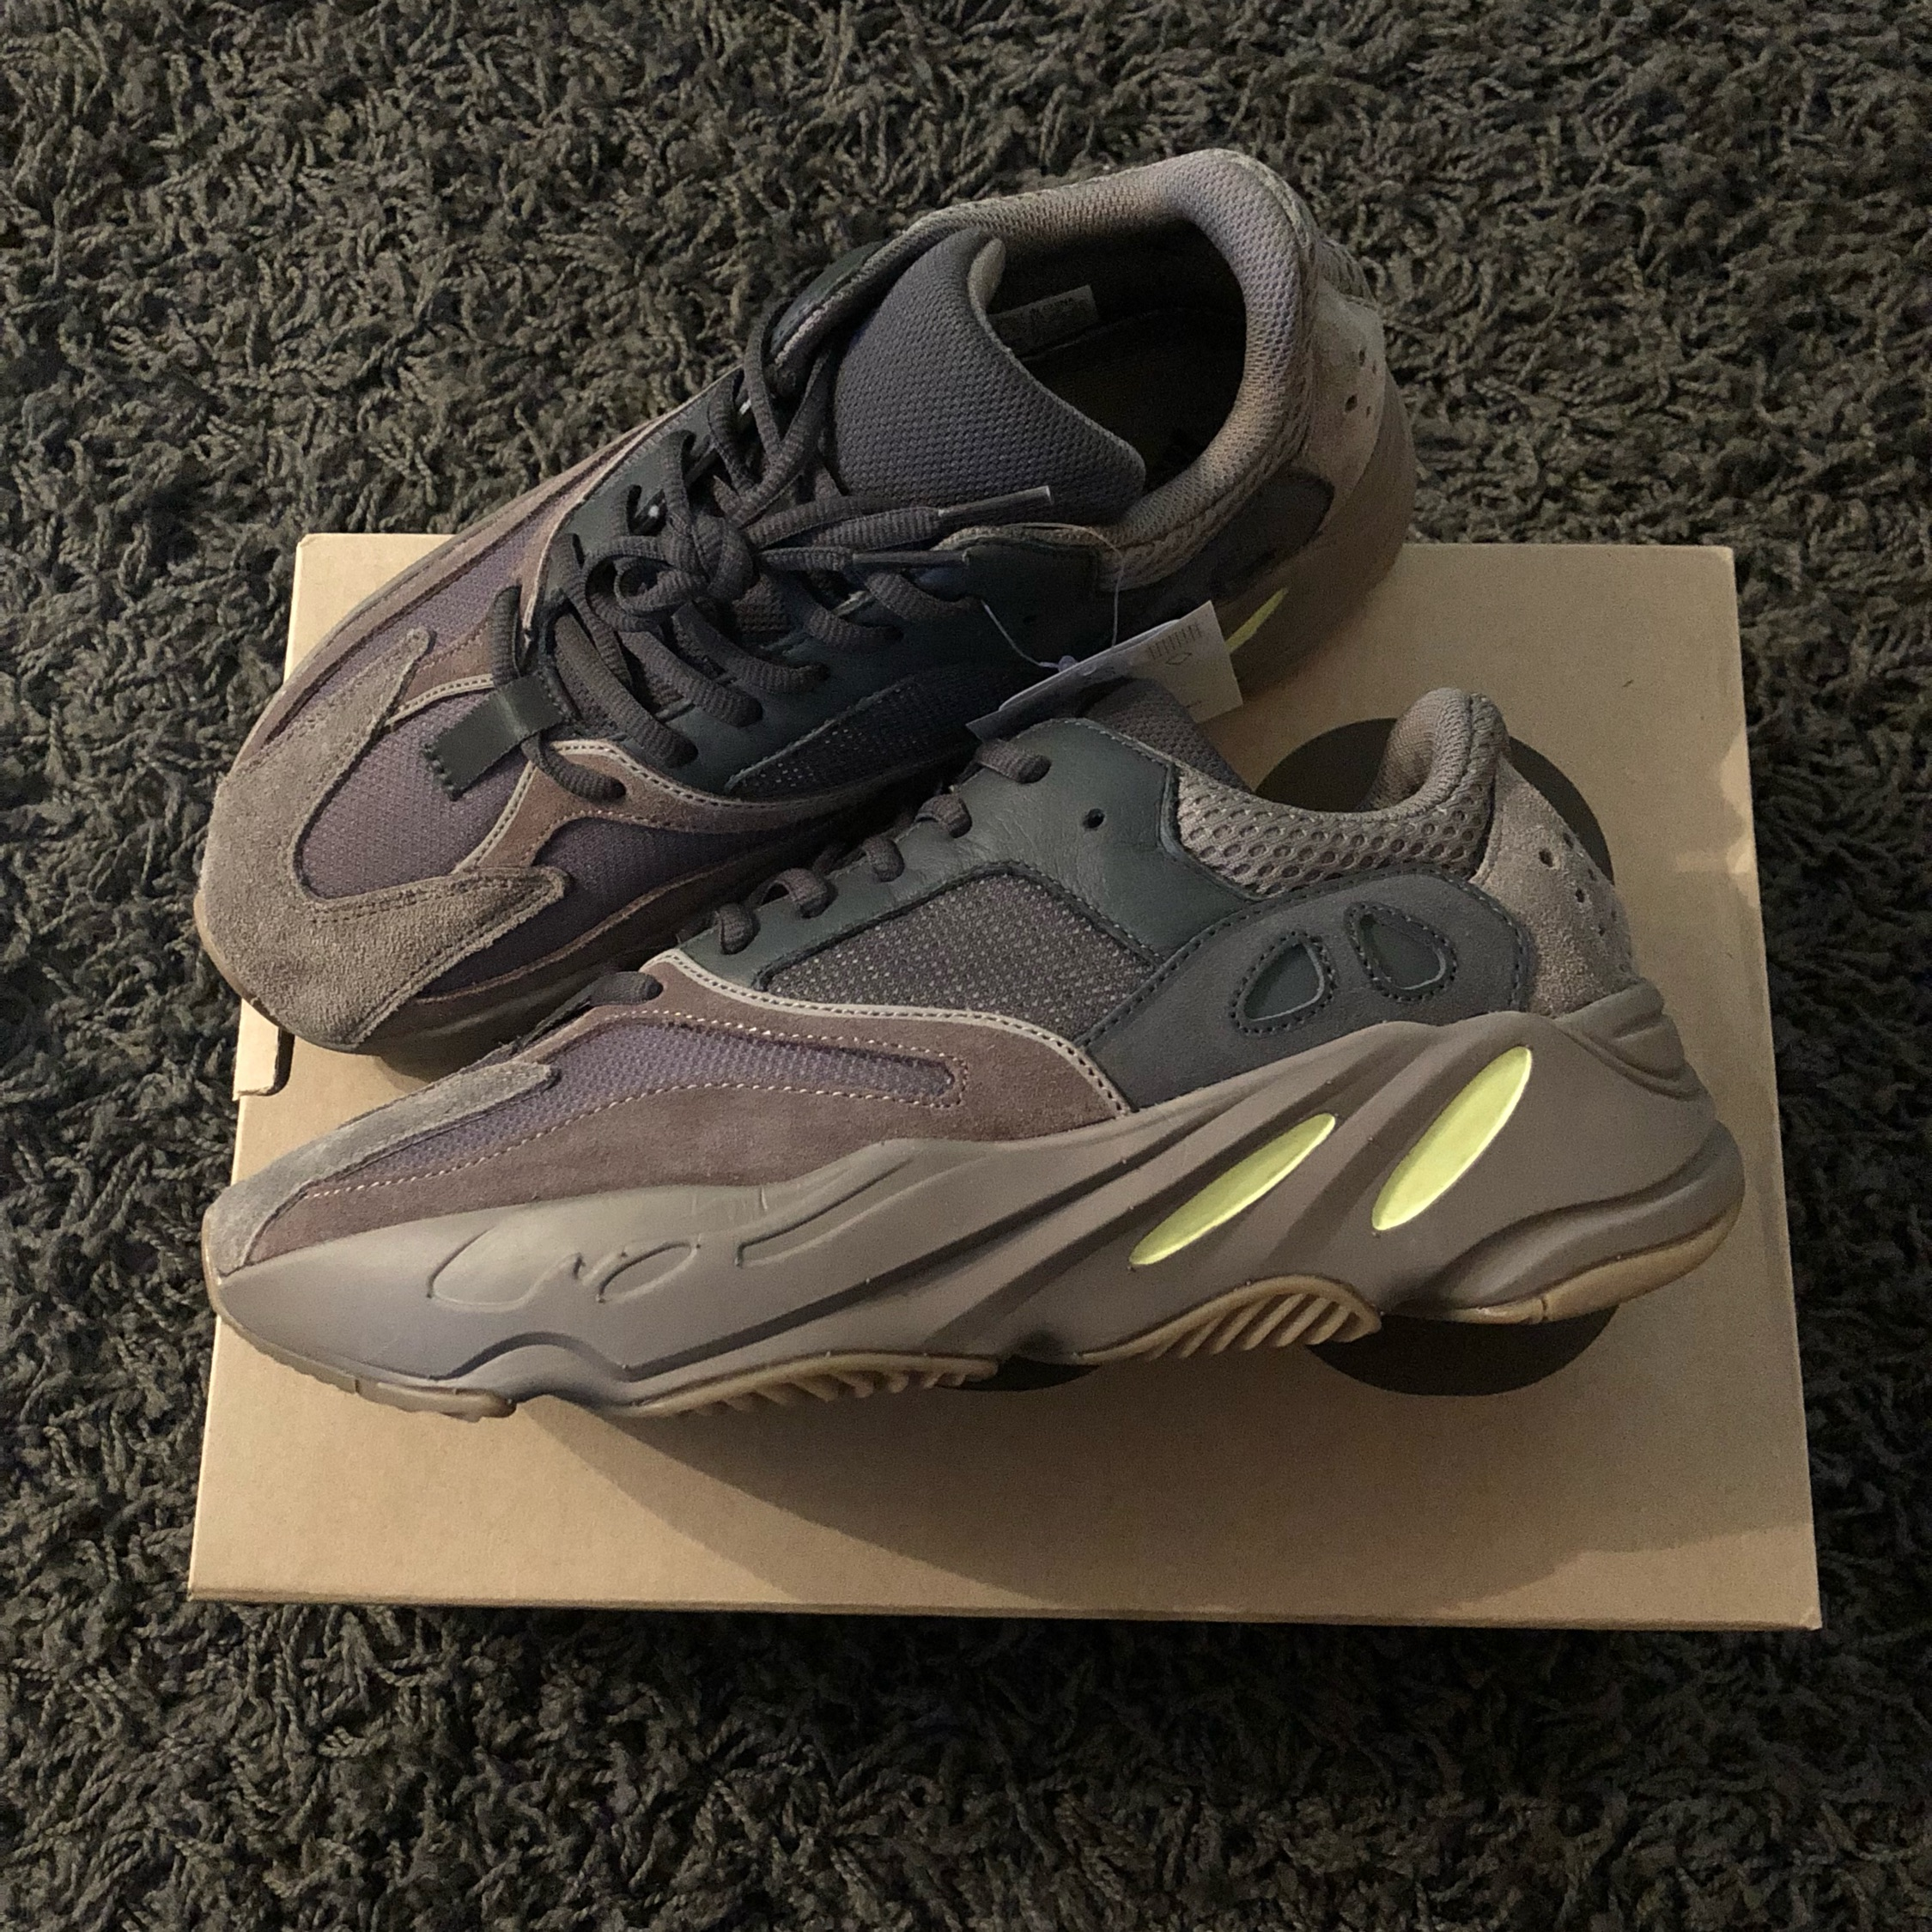 buy popular 8db78 ab949 Adidas Yeezy 700 Mauve Us8